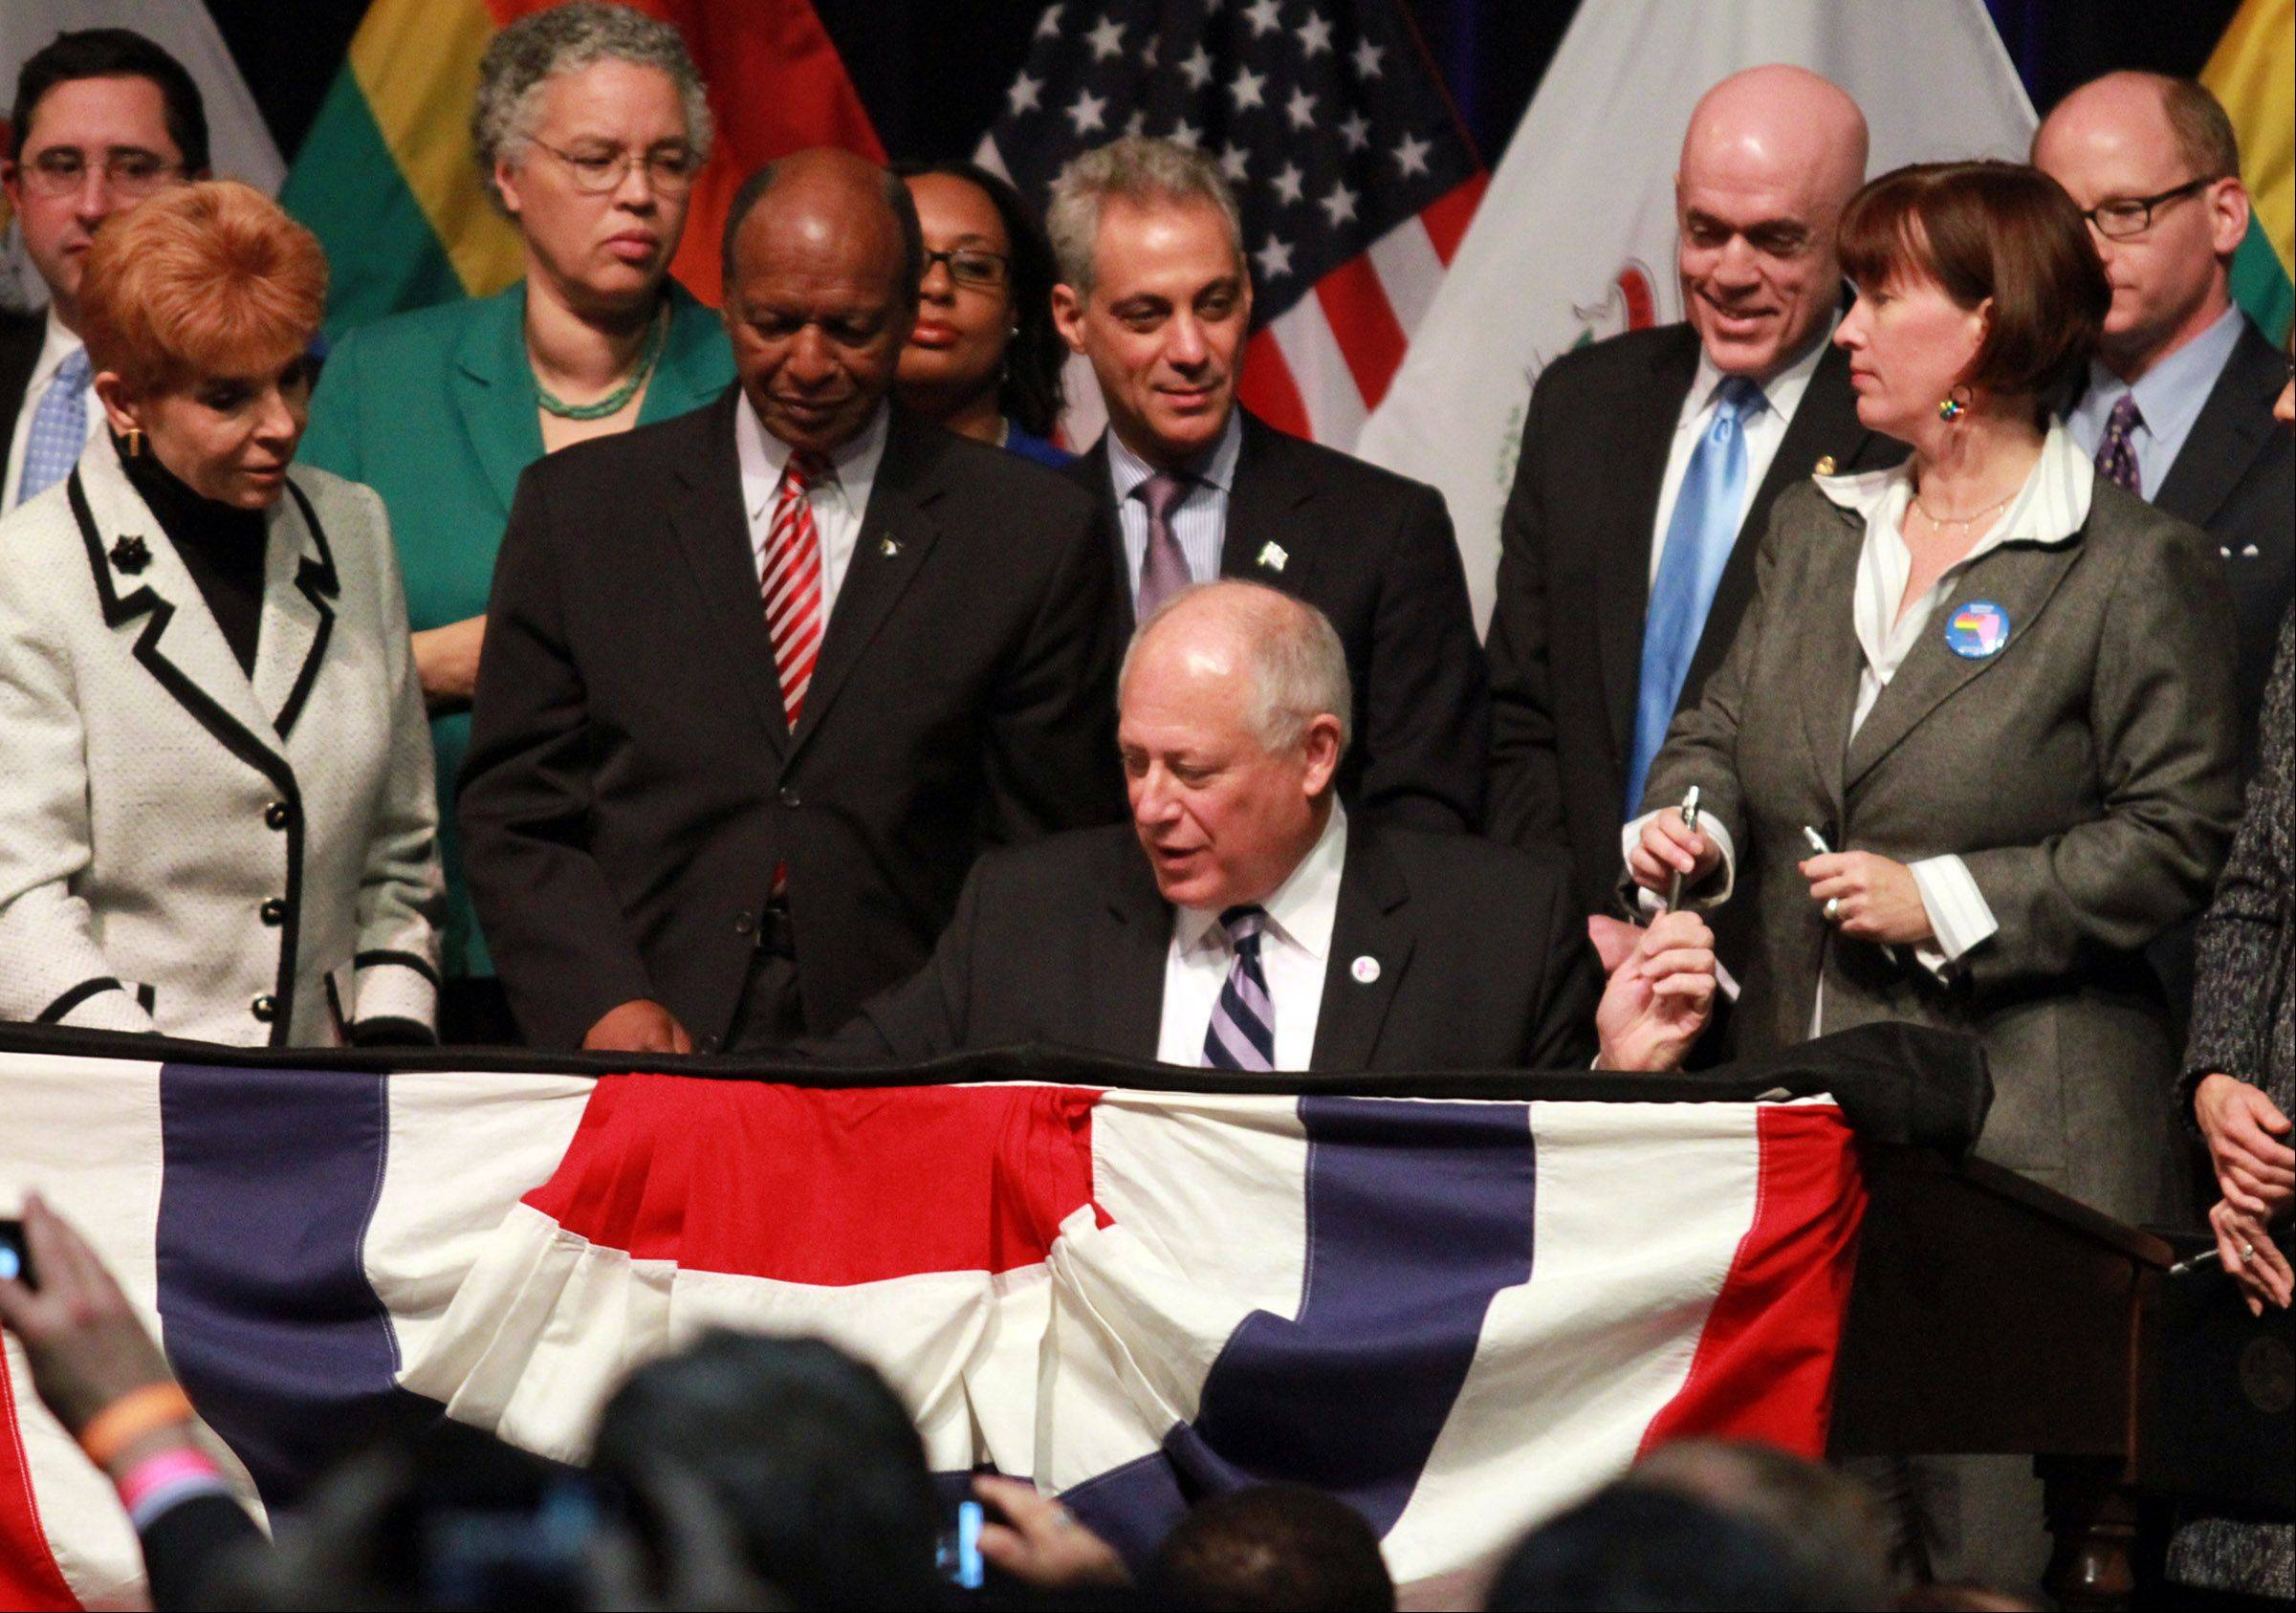 Gov. Pat Quinn on Wednesday signed into law a bill that legalizes same-sex marriage throughout Illinois. He used the same wooden desk on which Abraham Lincoln penned his first inaugural address during a ceremony at the University of Illinois at Chicago Forum.